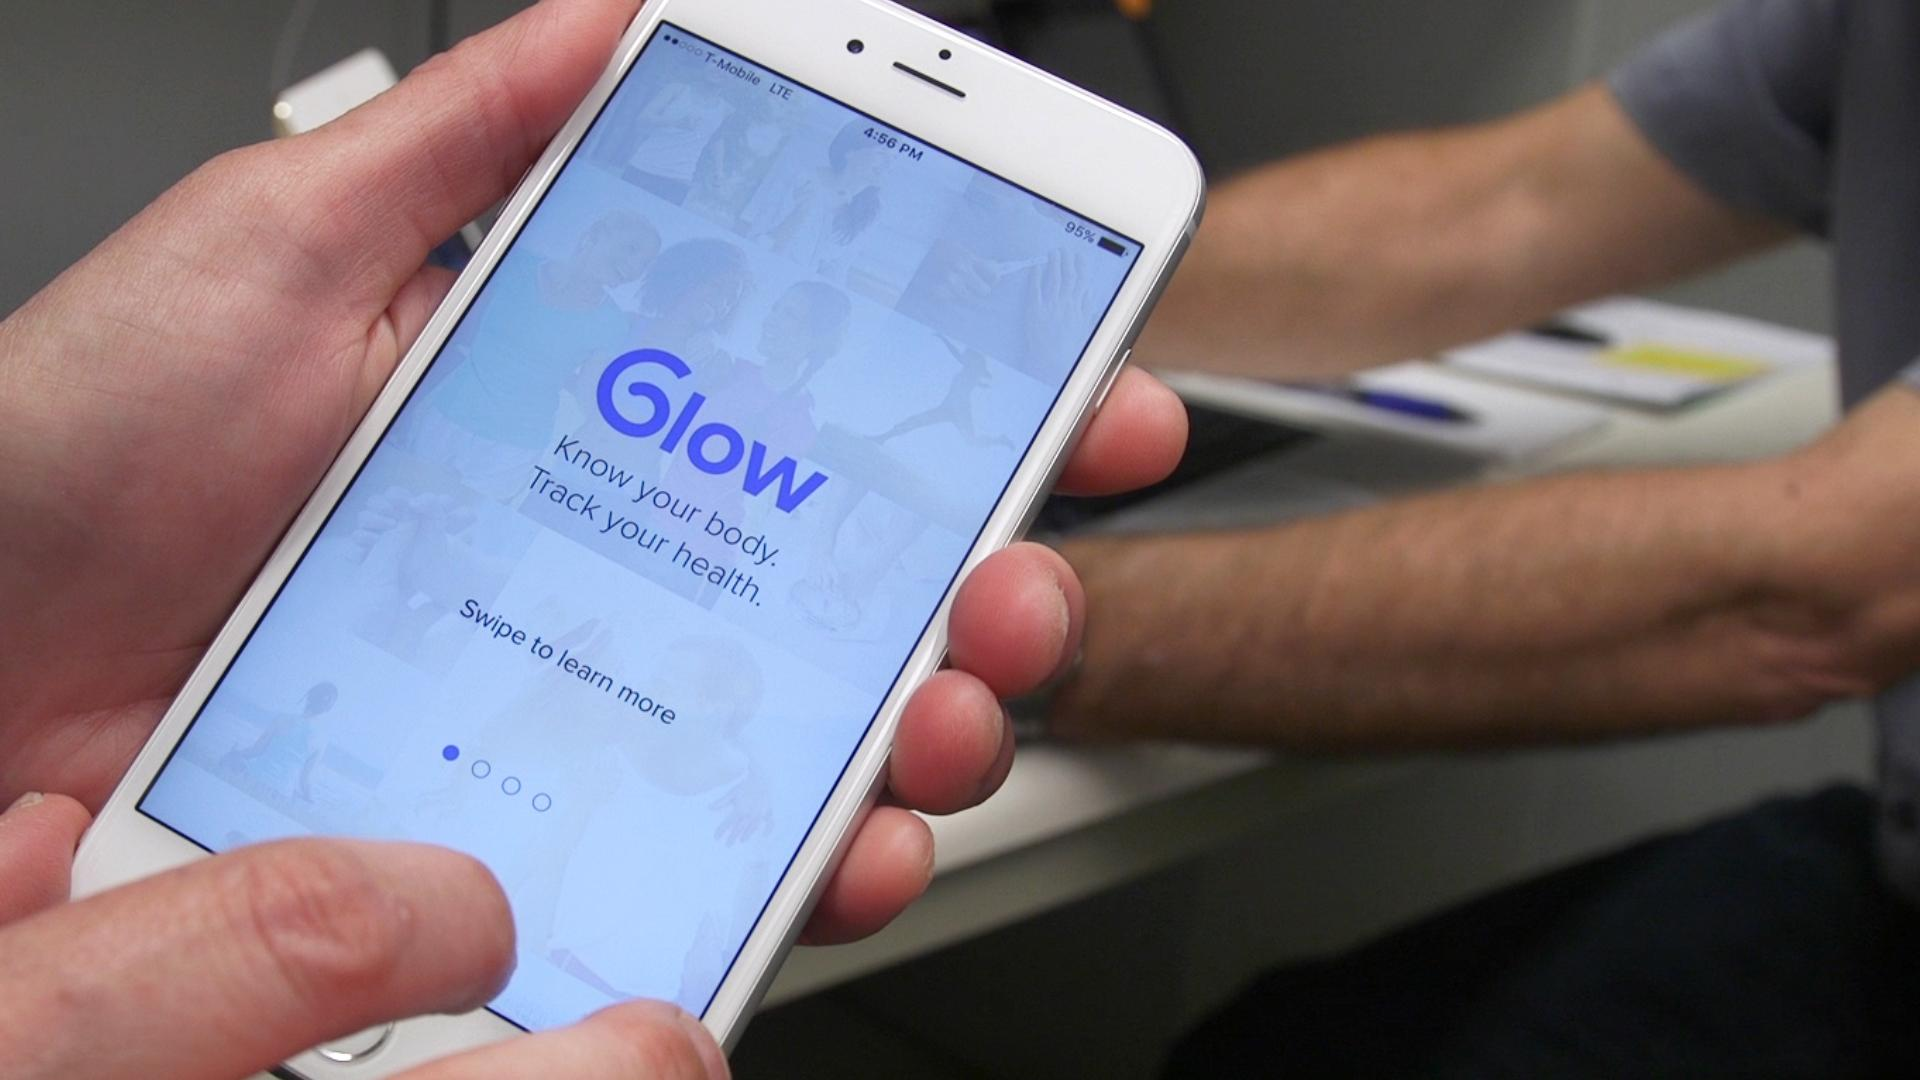 Glow Pregnancy App Exposed Women to Privacy Threats, Consumer Reports Finds  - Consumer Reports